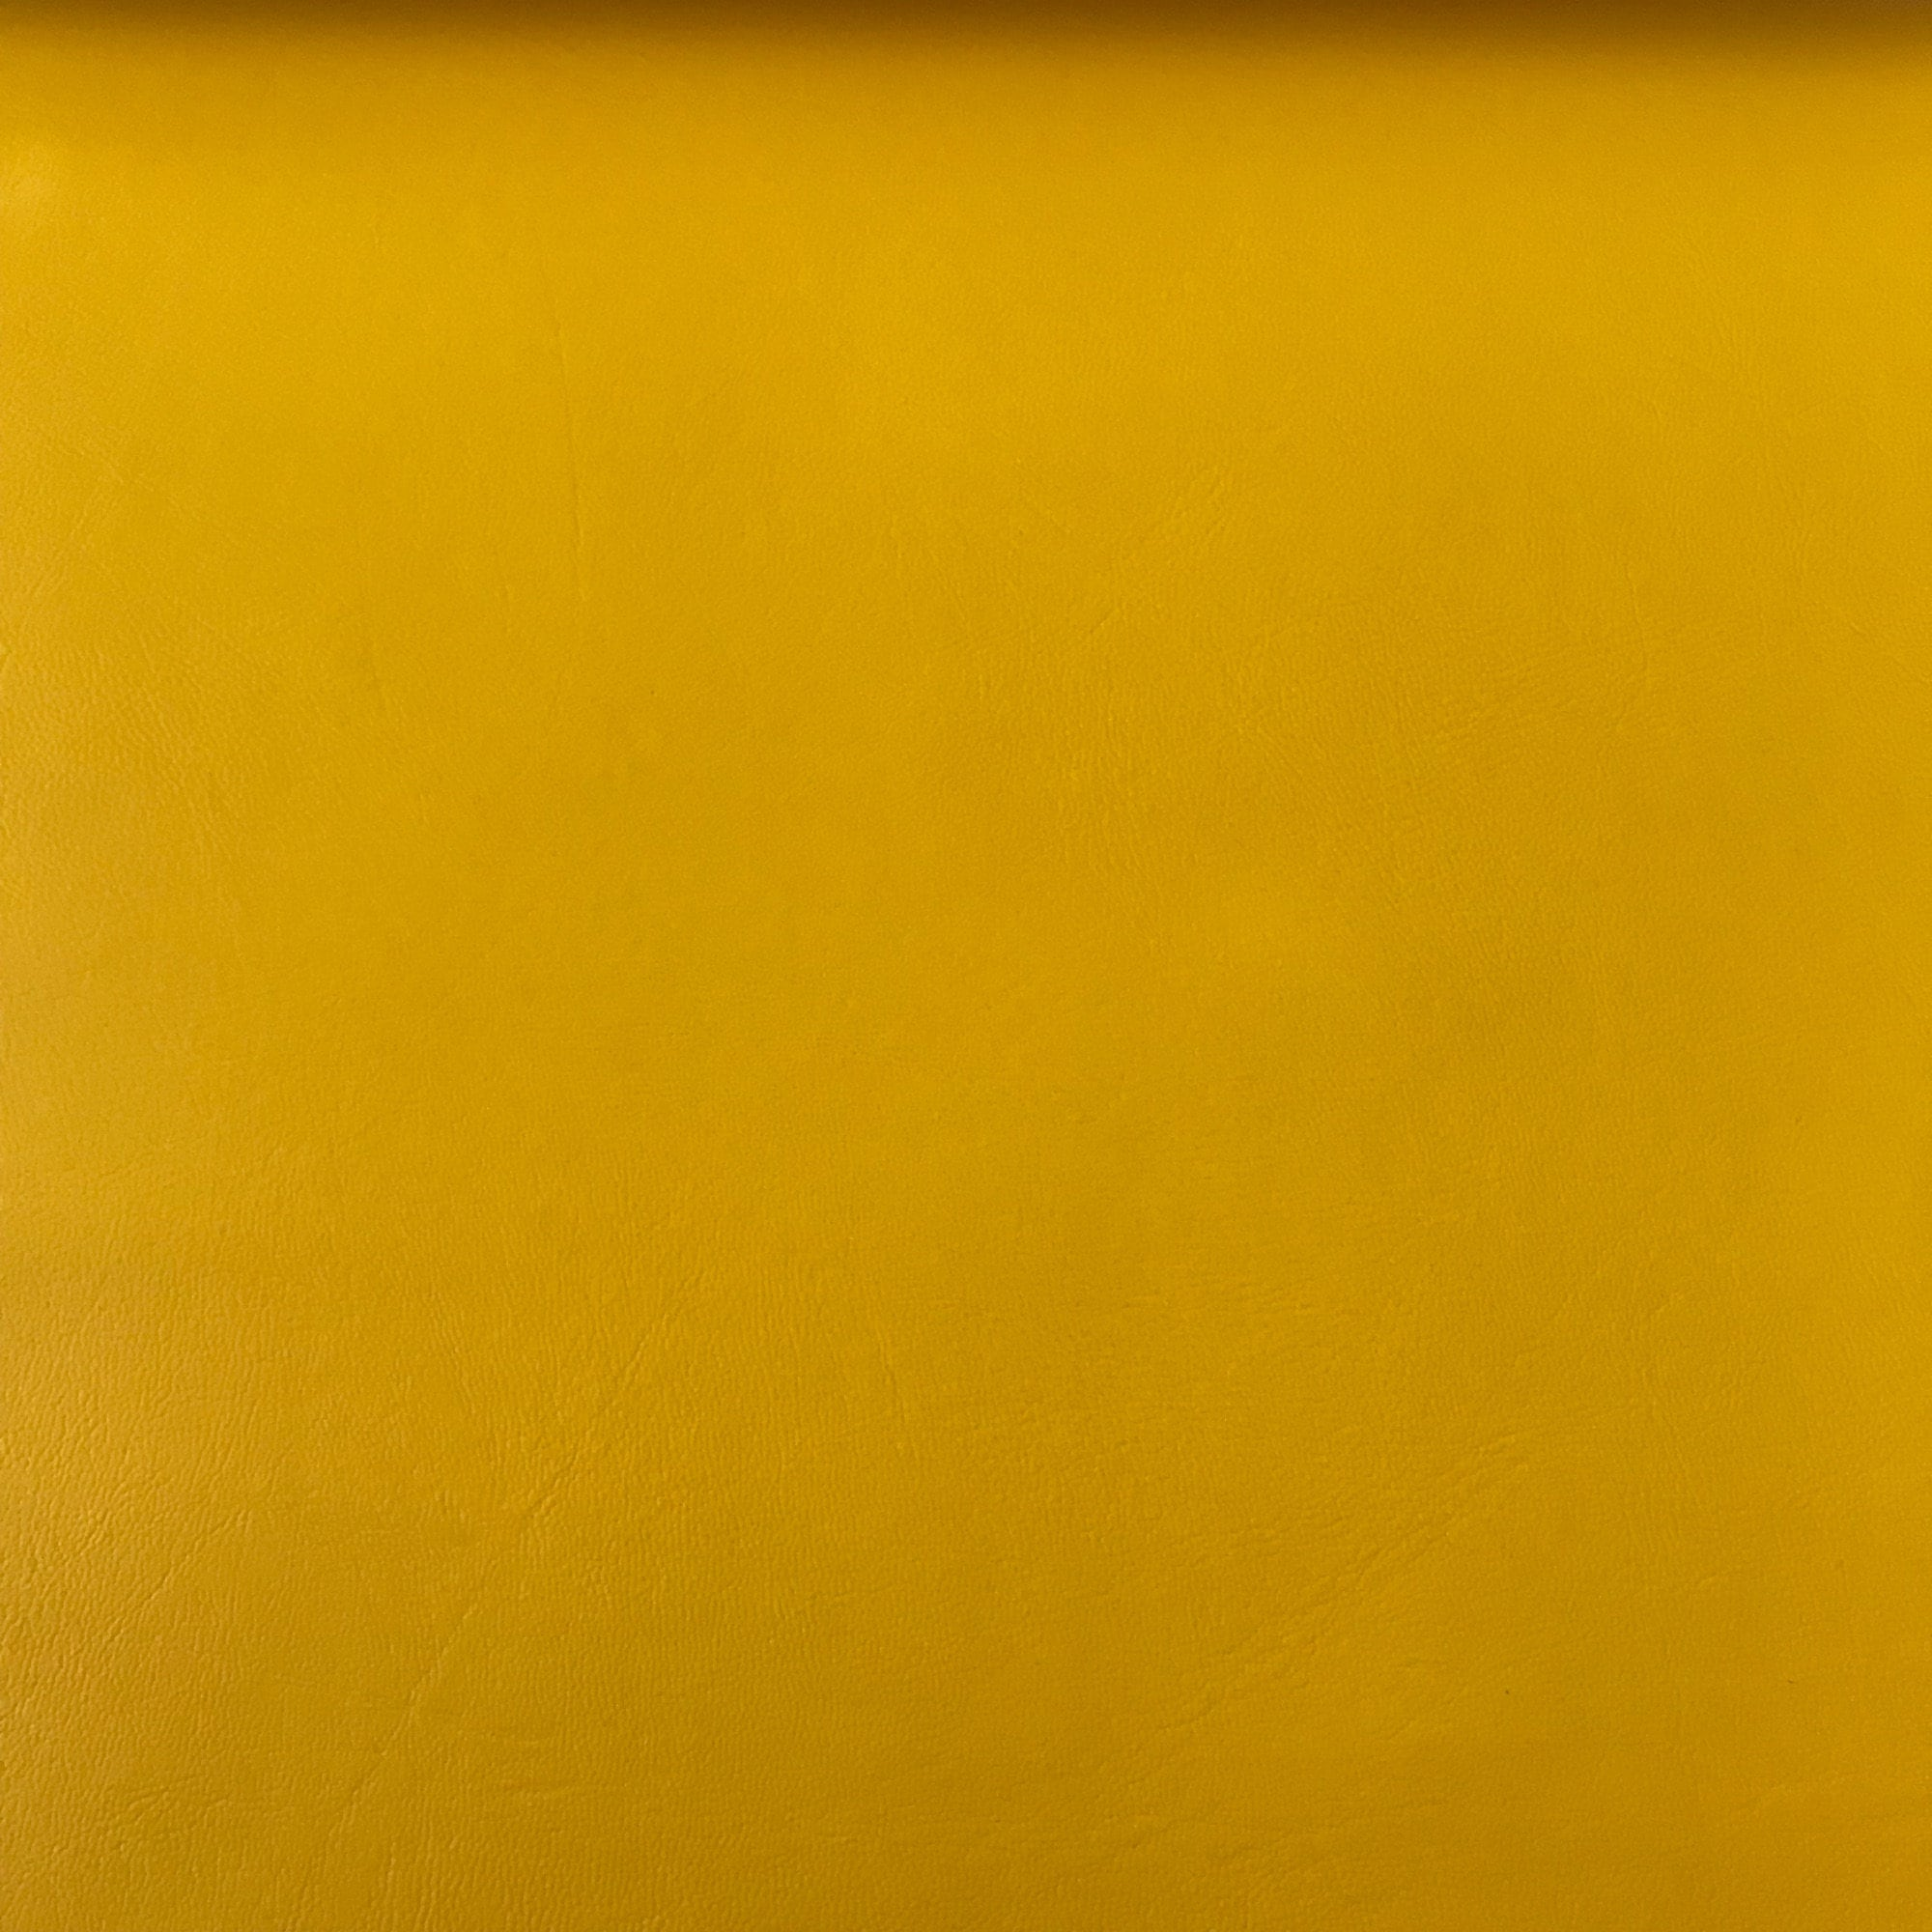 yellow faux leather vinyl fabric with a smooth grain, Sold in A4 , A3 and  Rolls